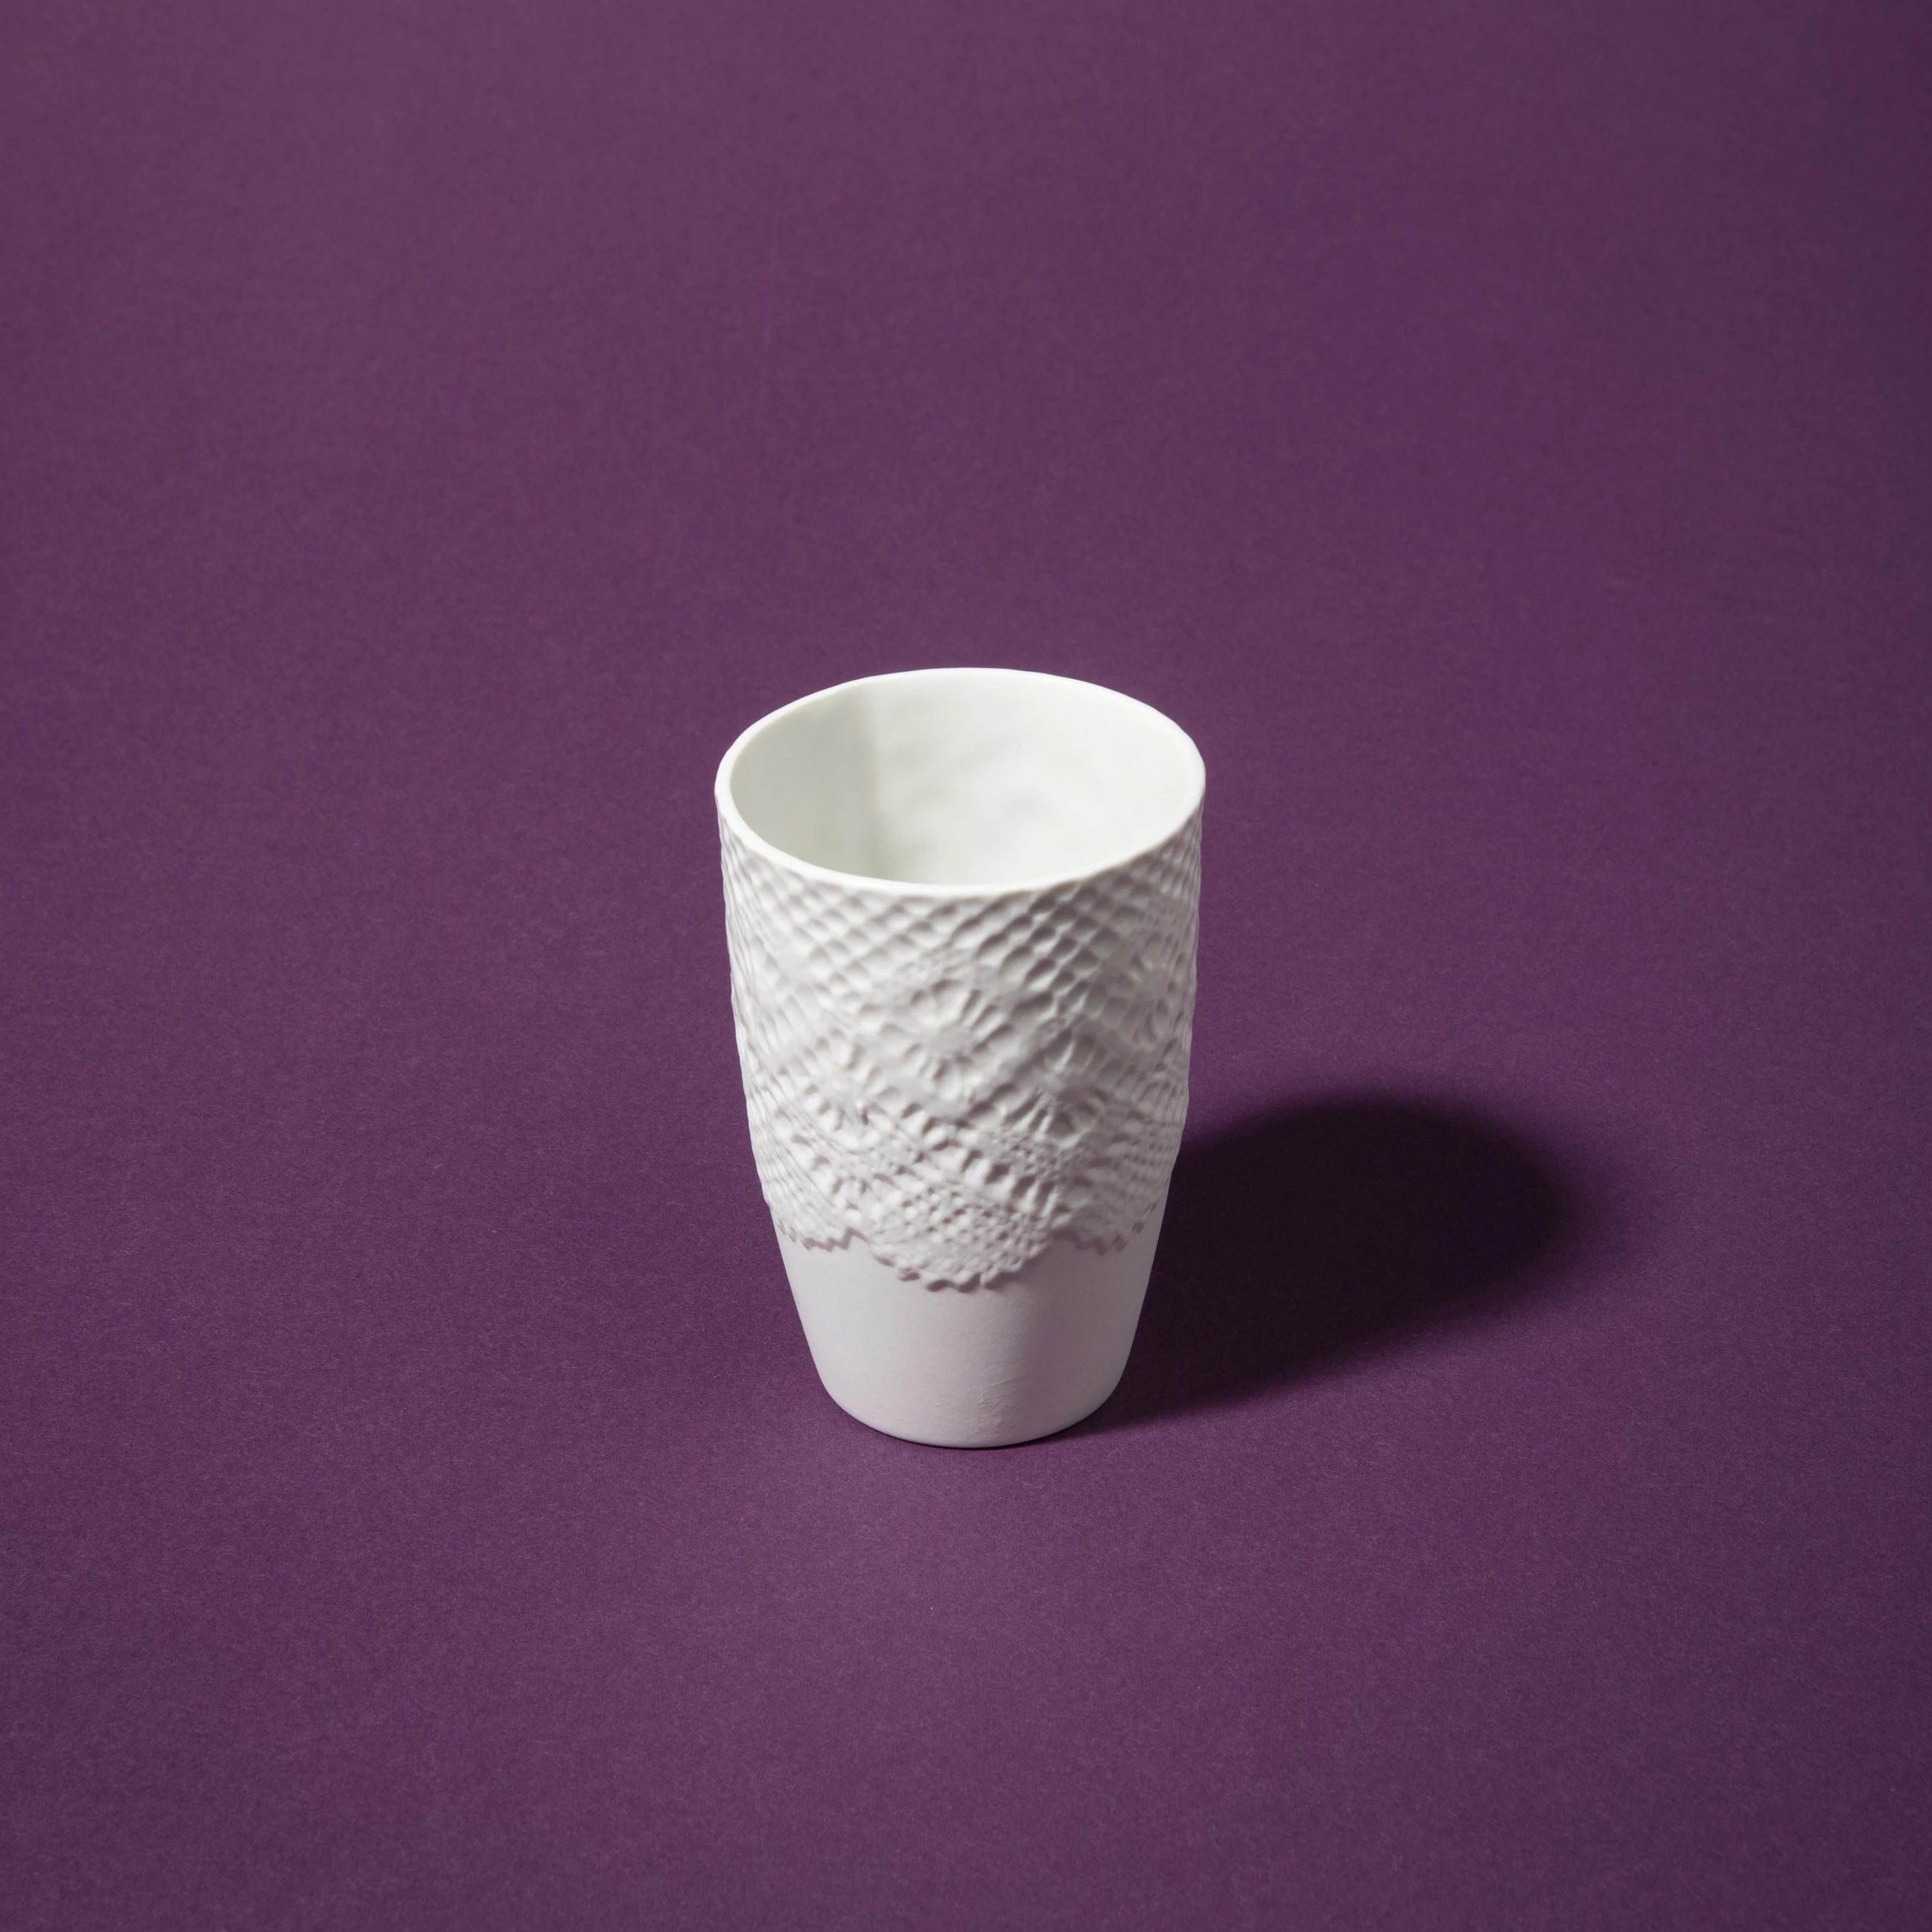 Porcelain Mug Inspired by Lace from Rembrandt painting official Rijksmuseum Shop